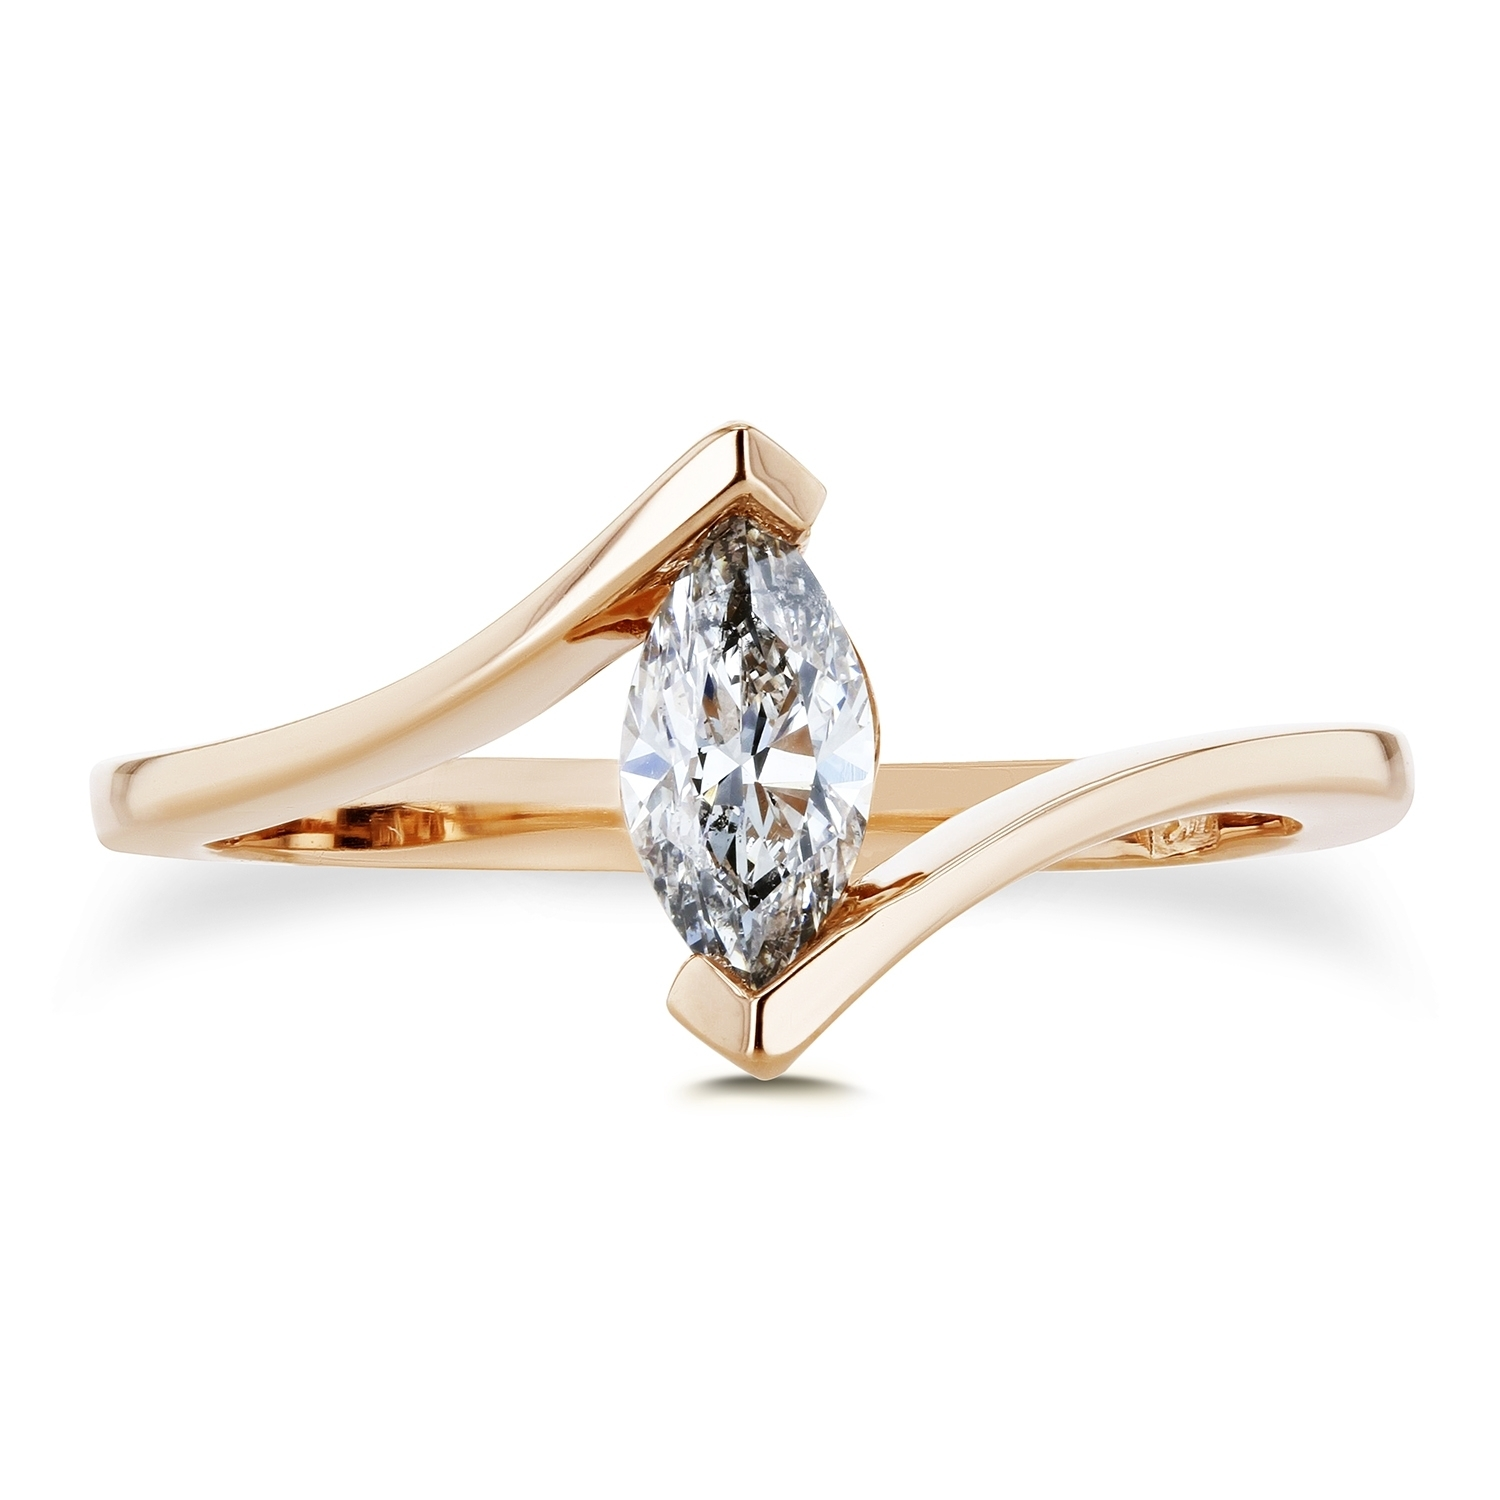 Blog – One Of A Kind Engagement Rings That Will Knock You Off Your Pertaining To Newest Chevron Stone Rings (View 10 of 15)